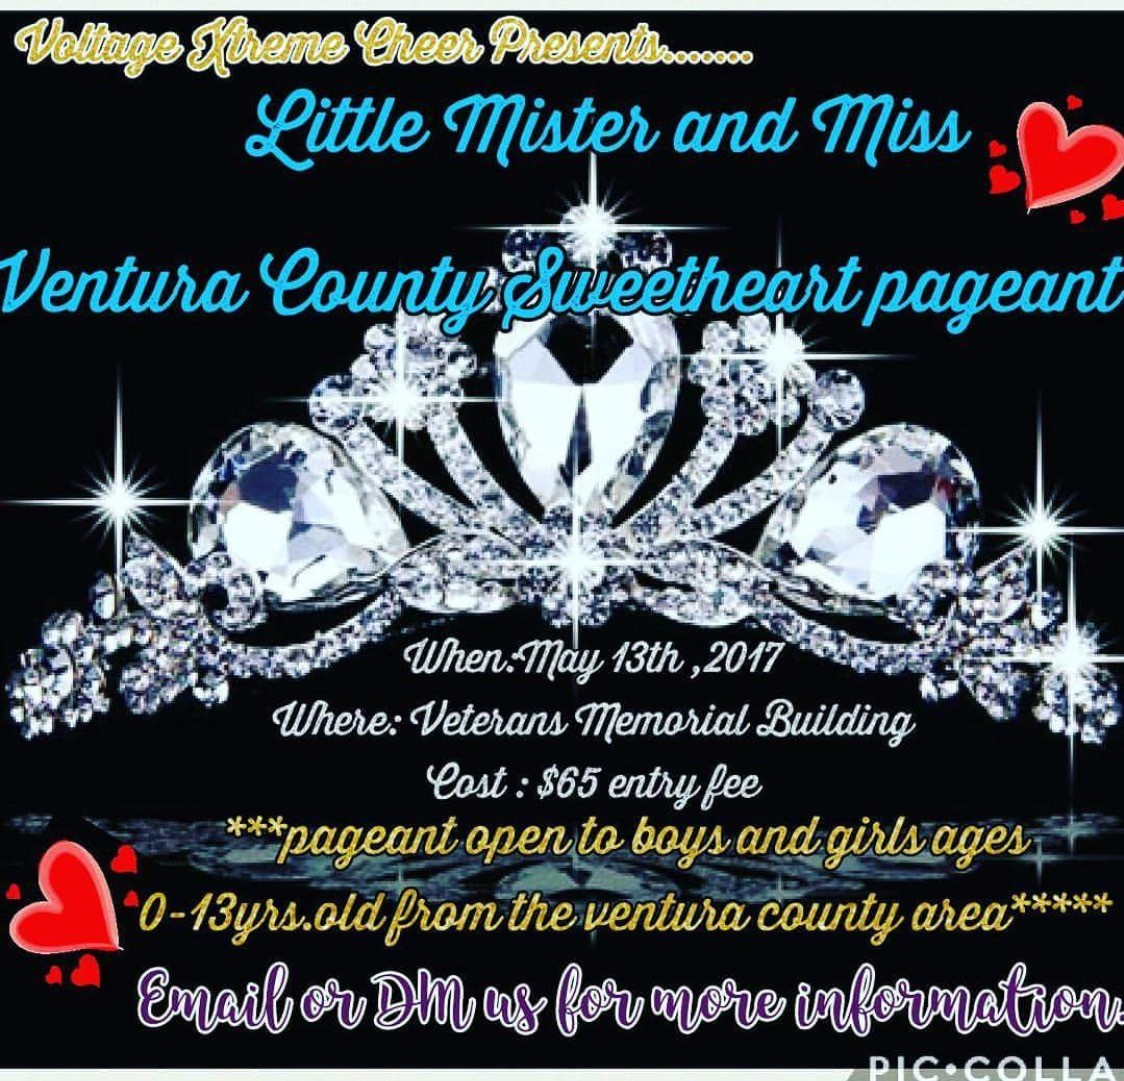 Little Mister and Miss Ventura County Sweetheart Pageant May 13, 2017.jpg